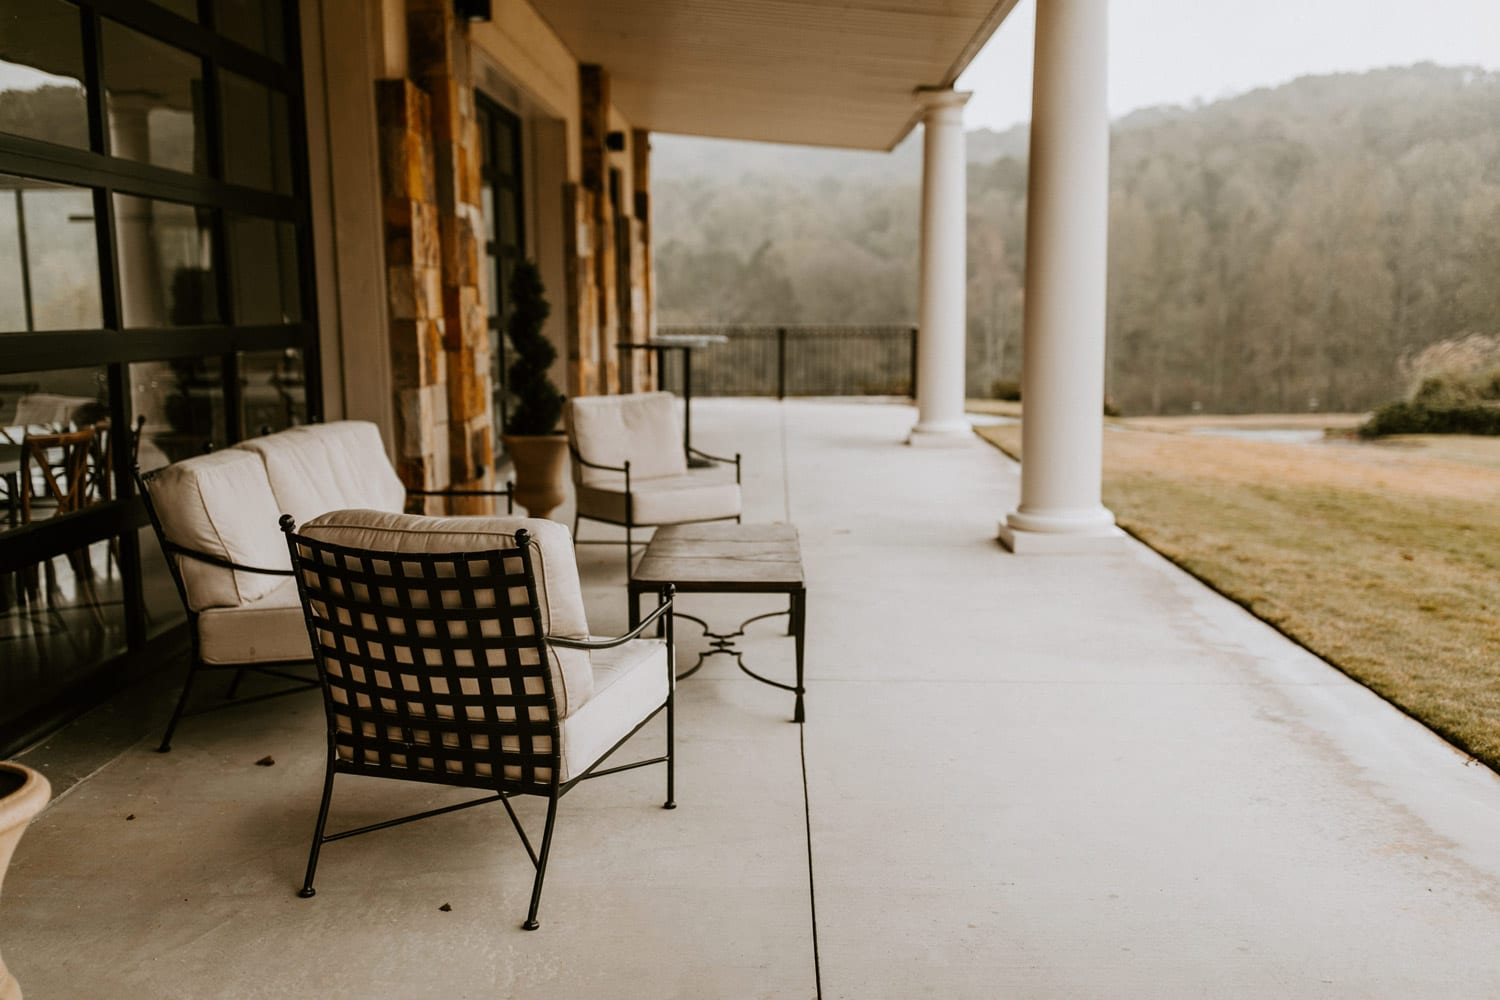 The porch at The Gardens during the rain